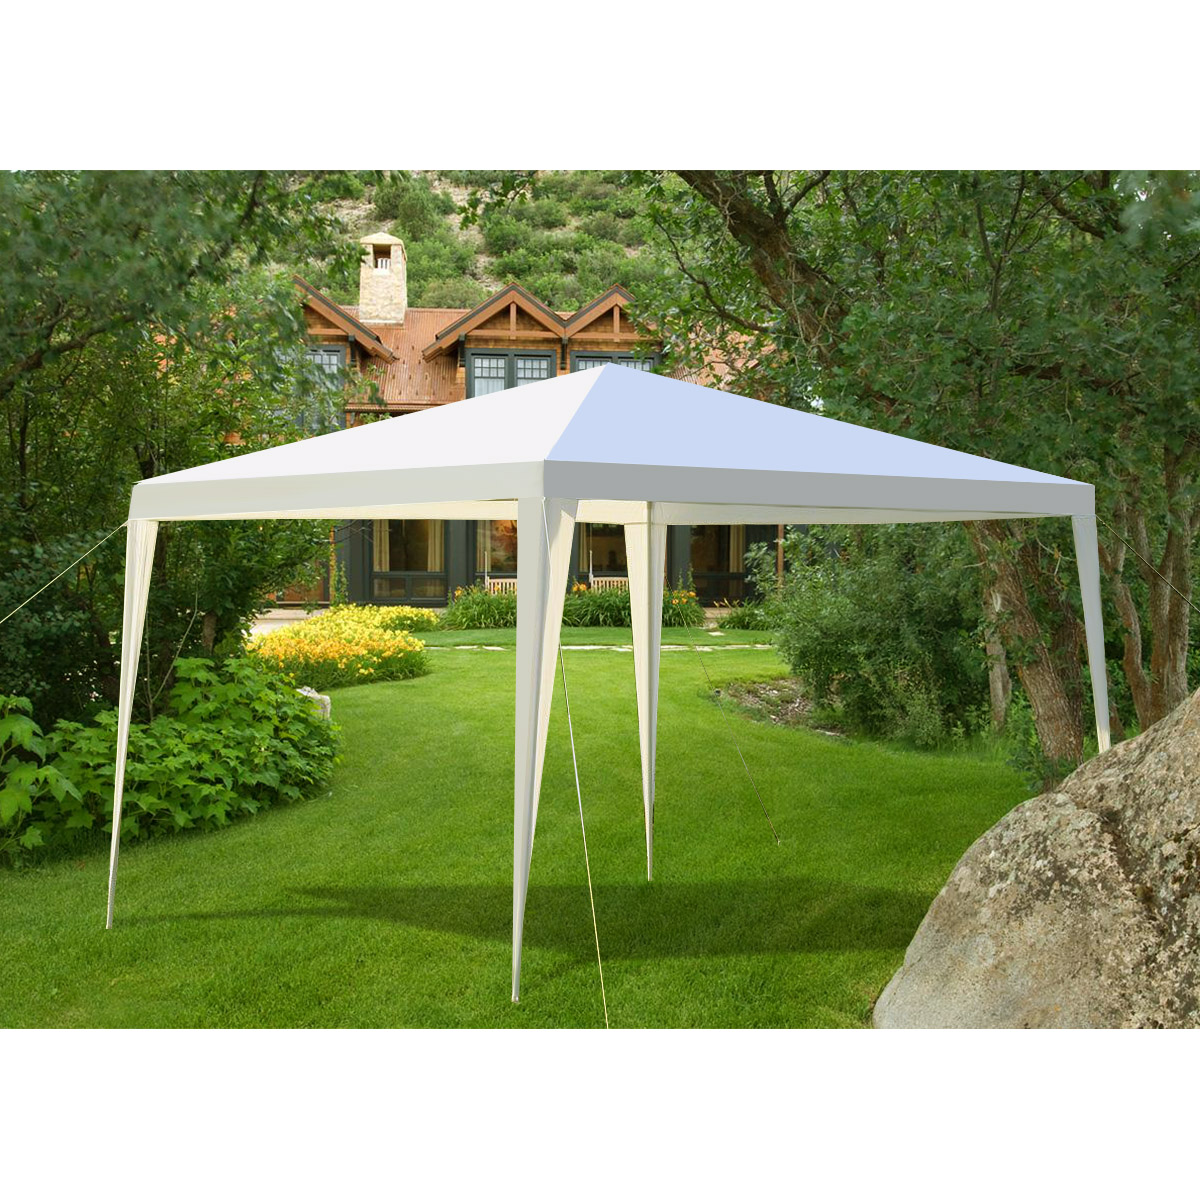 Gymax Outdoor Heavy Duty 10'x10' Canopy Party Wedding Tent Gazebo Pavilion Cater Event by Gymax